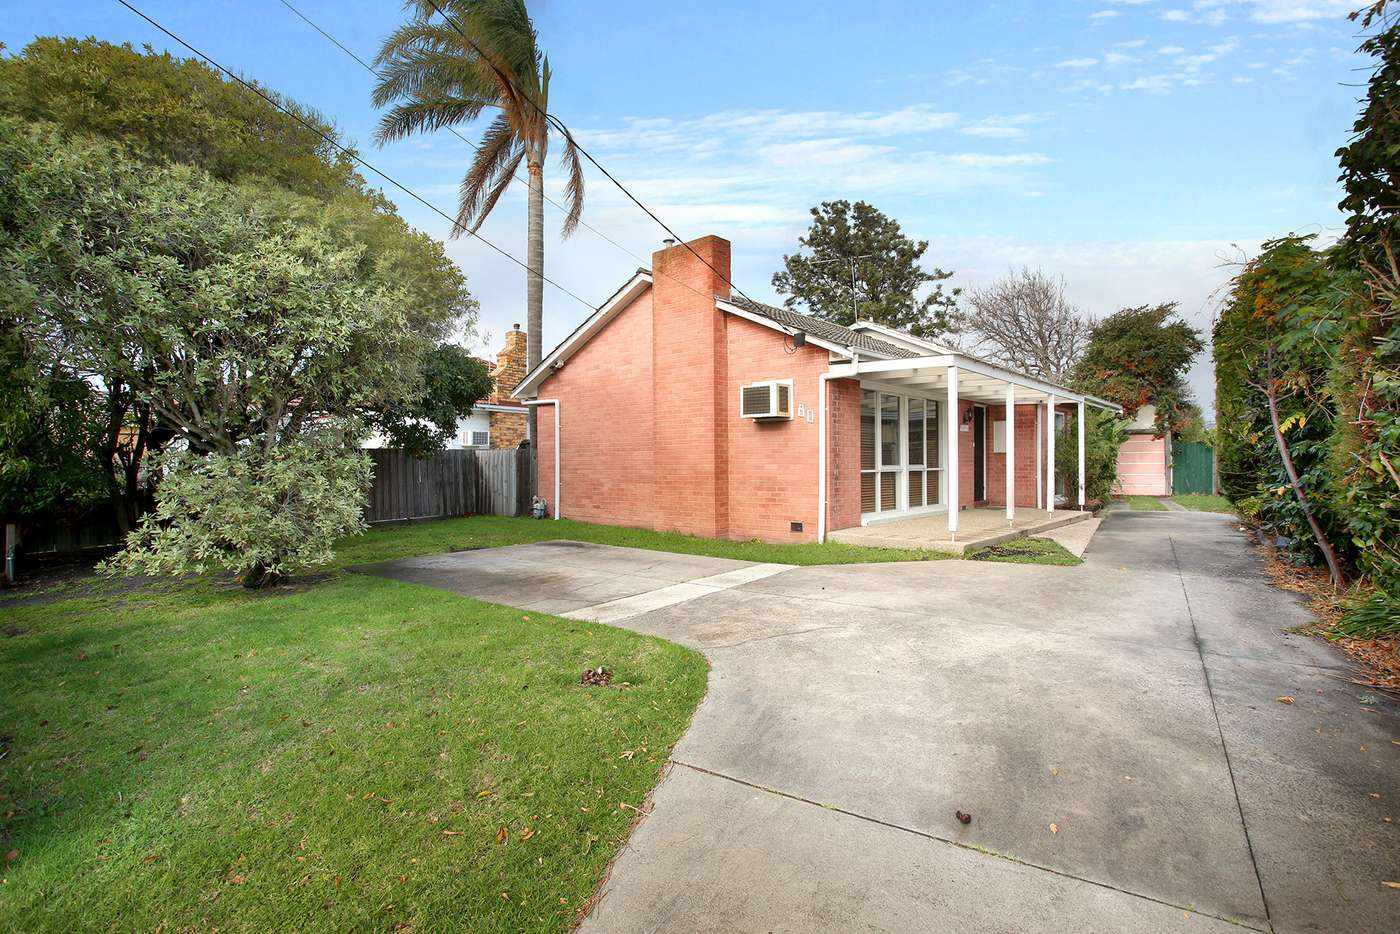 Main view of Homely house listing, 80 Rae Avenue, Edithvale, VIC 3196